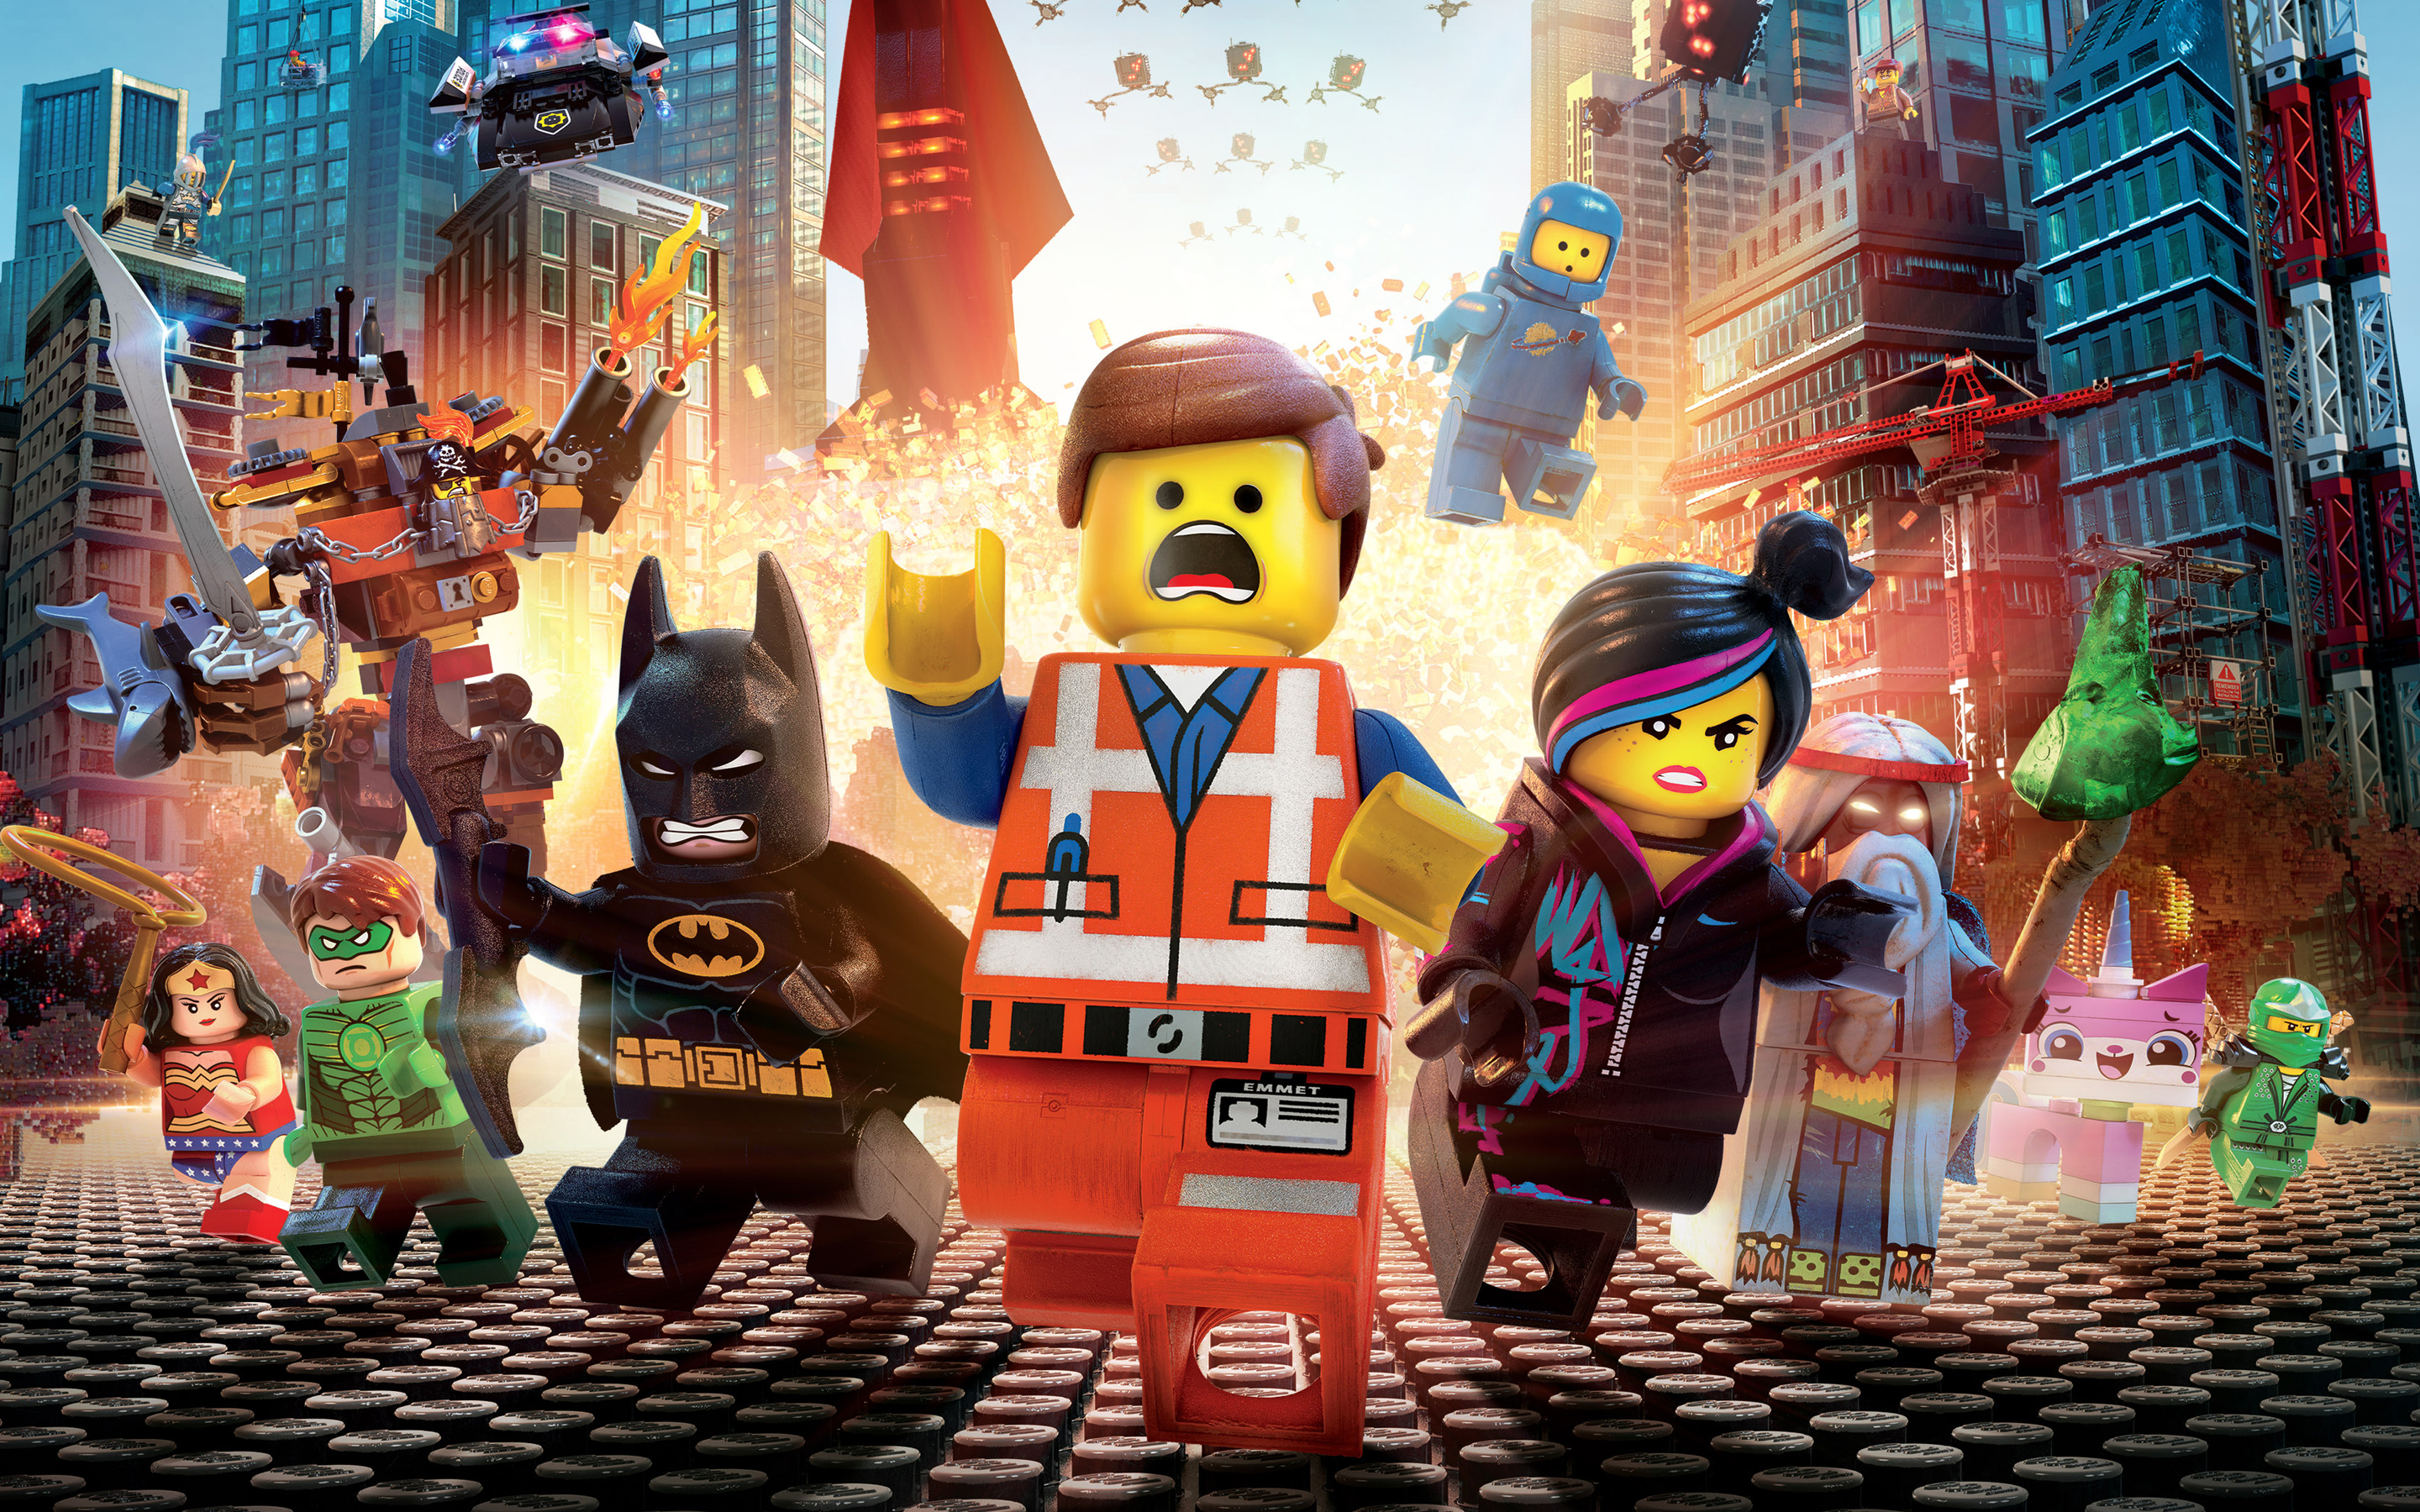 A post for The Lego Movie, featuring main characters Emmett, Wild Style, and others